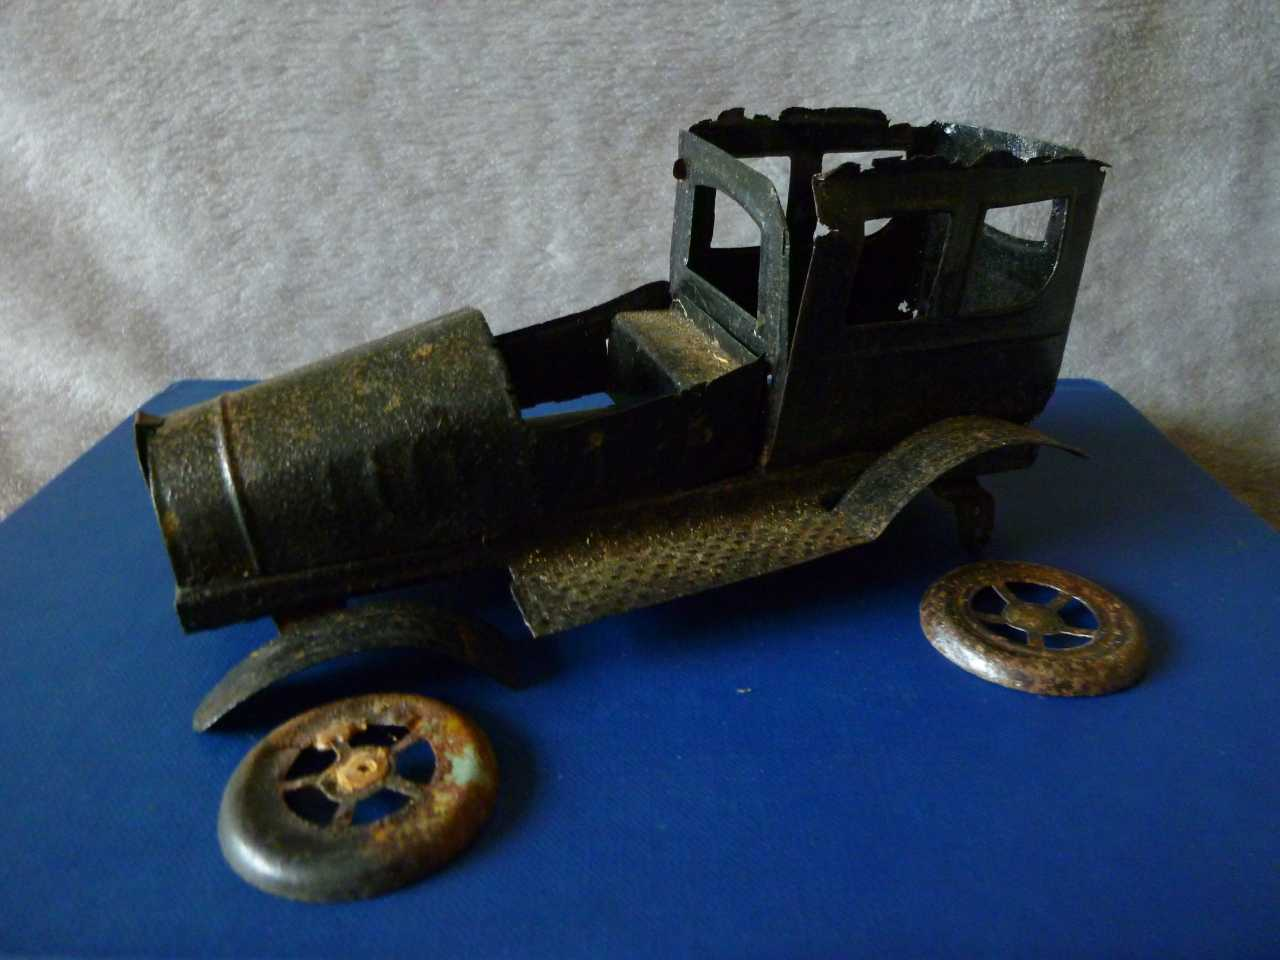 Unearthing an Early Tinplate Toy Discovery